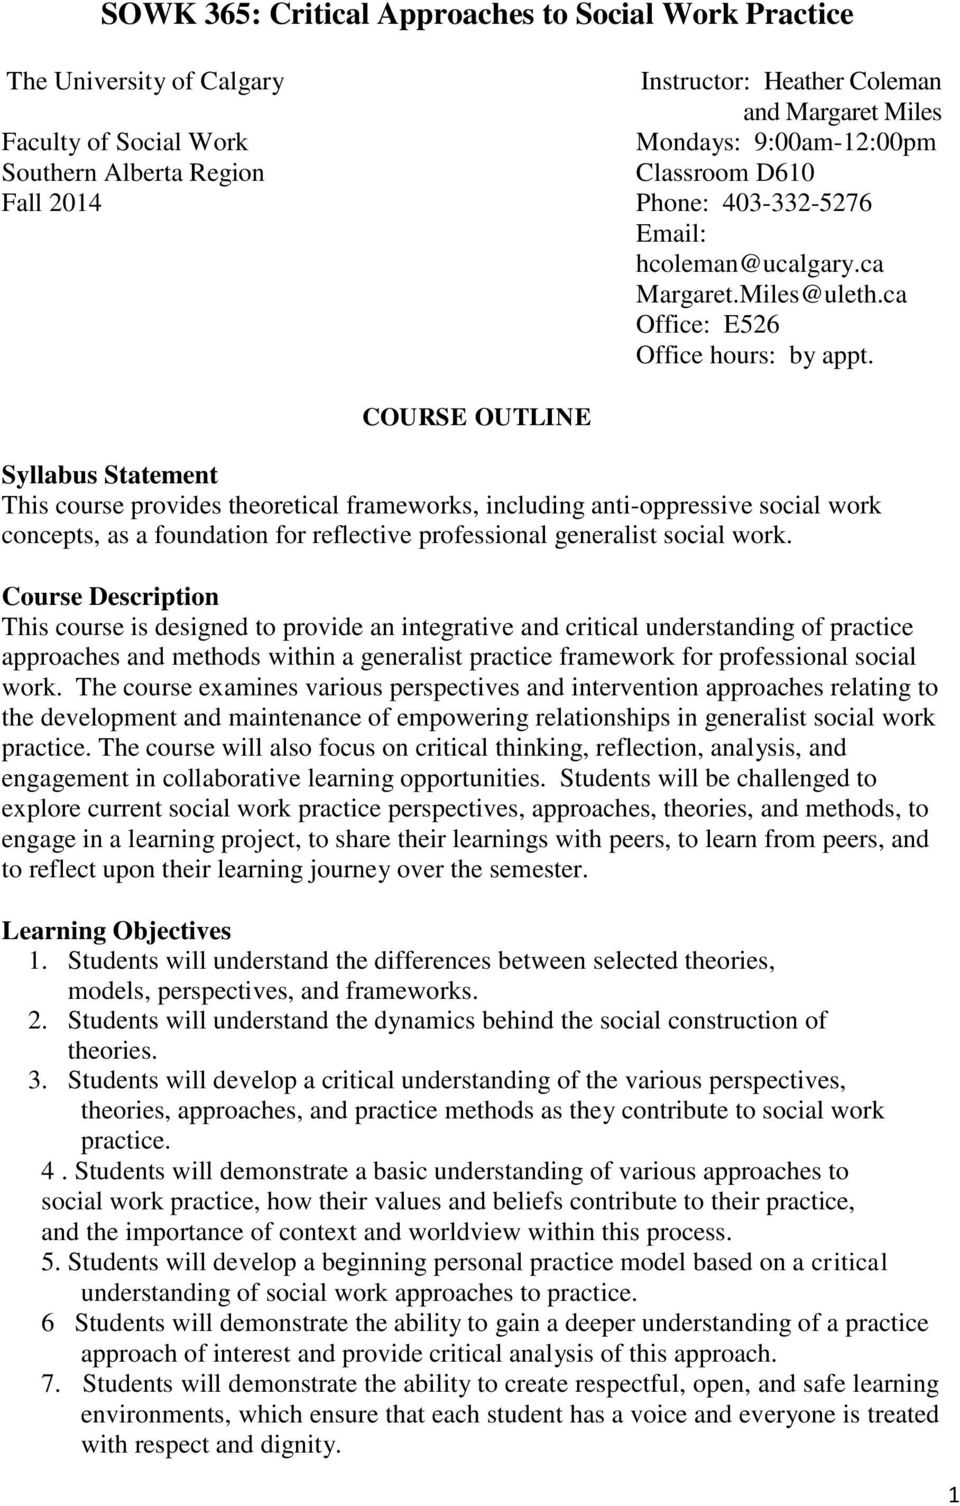 COURSE OUTLINE Syllabus Statement This course provides theoretical frameworks, including anti-oppressive social work concepts, as a foundation for reflective professional generalist social work.